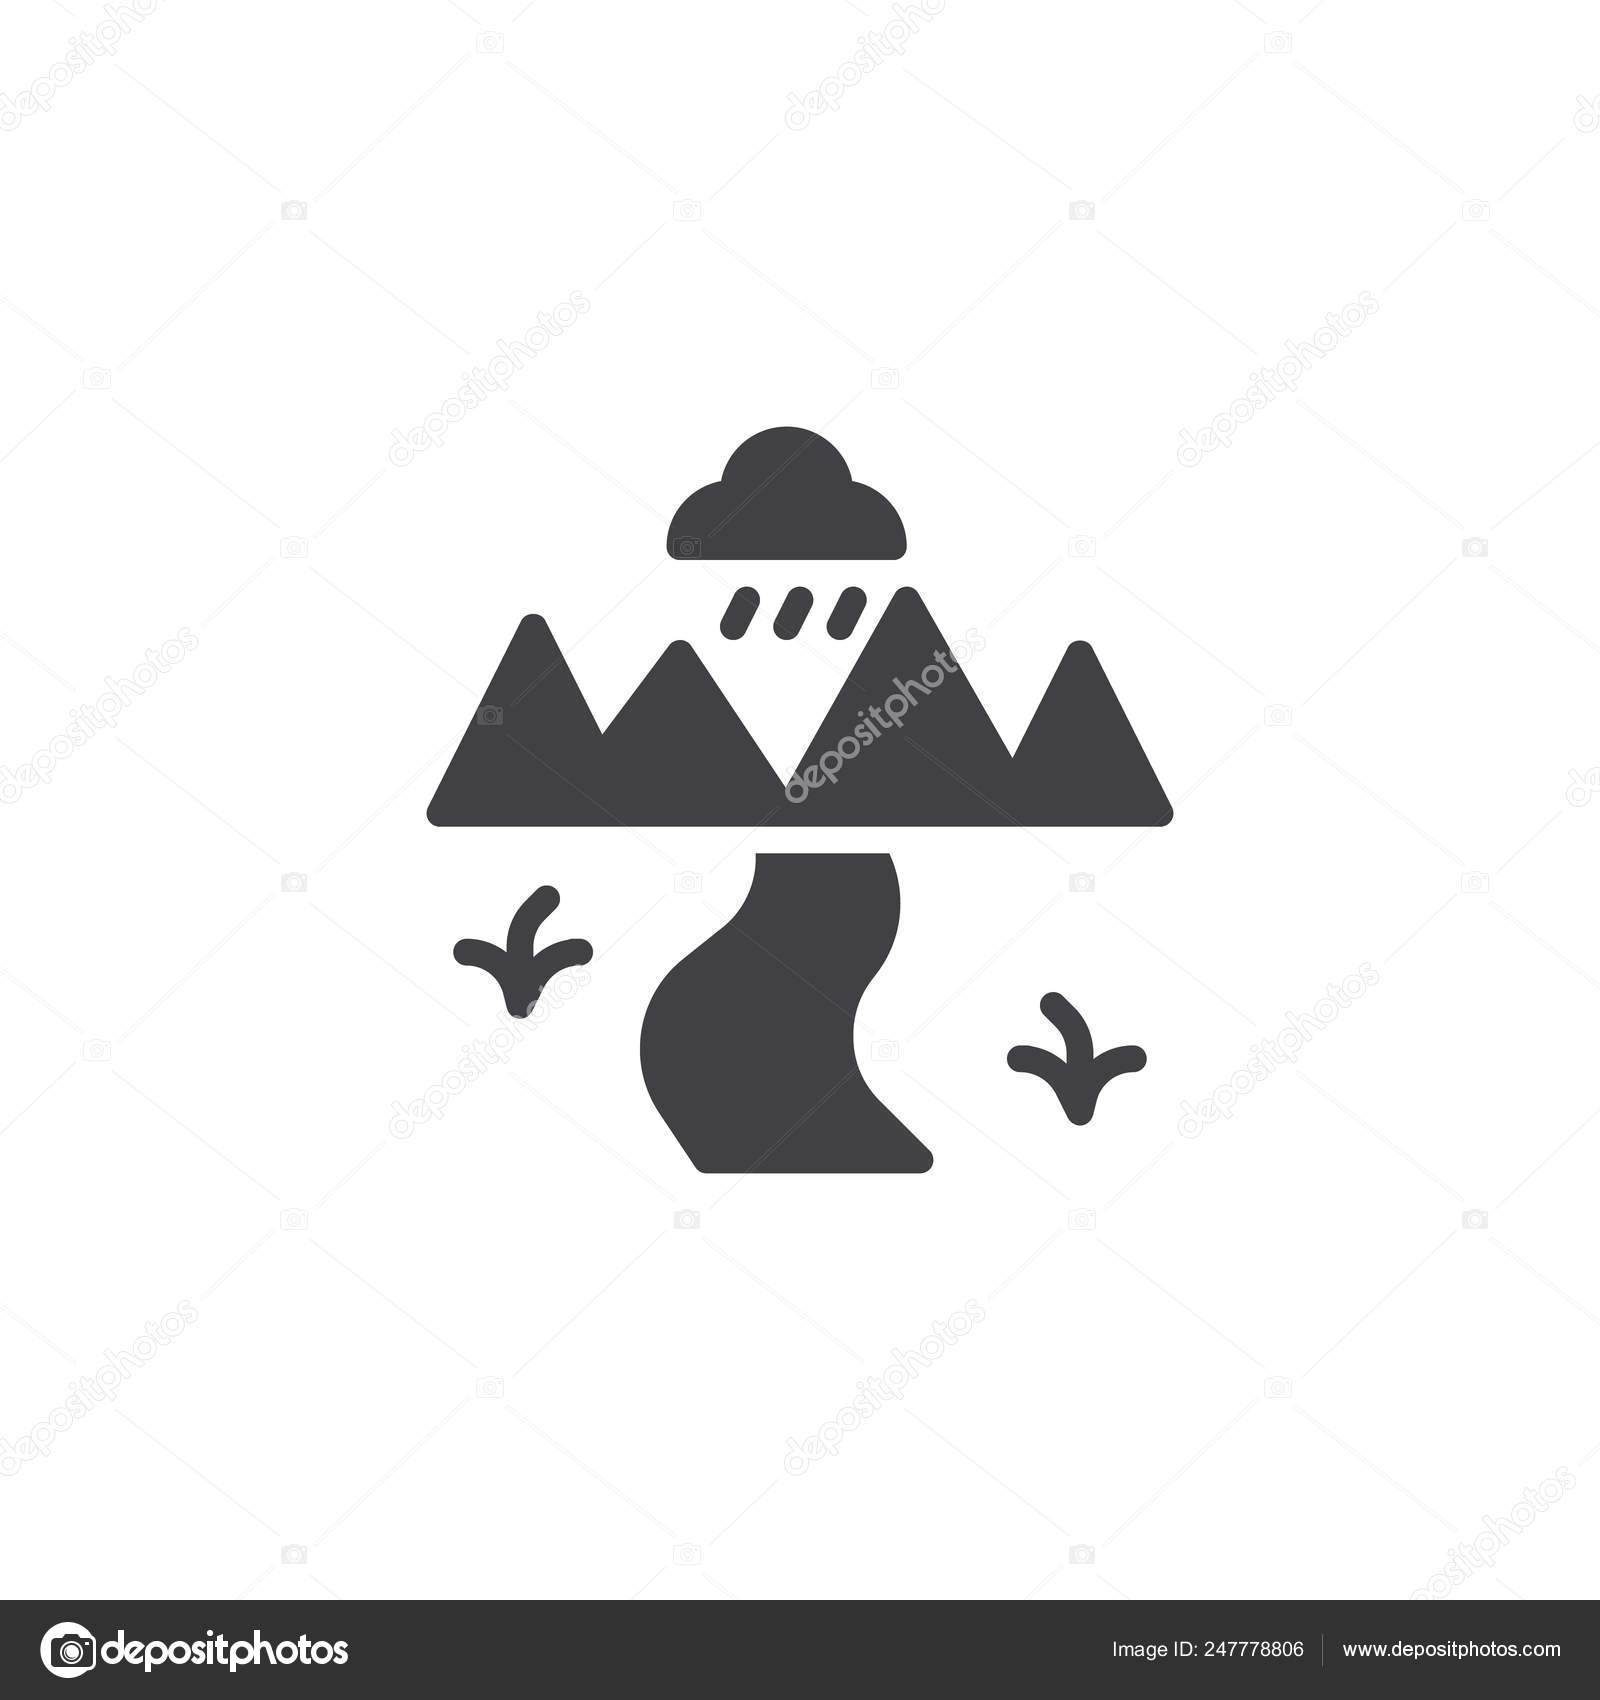 nature landscape river vector icon filled flat sign mobile concept stock vector c avicons 247778806 https depositphotos com 247778806 stock illustration nature landscape river vector icon html